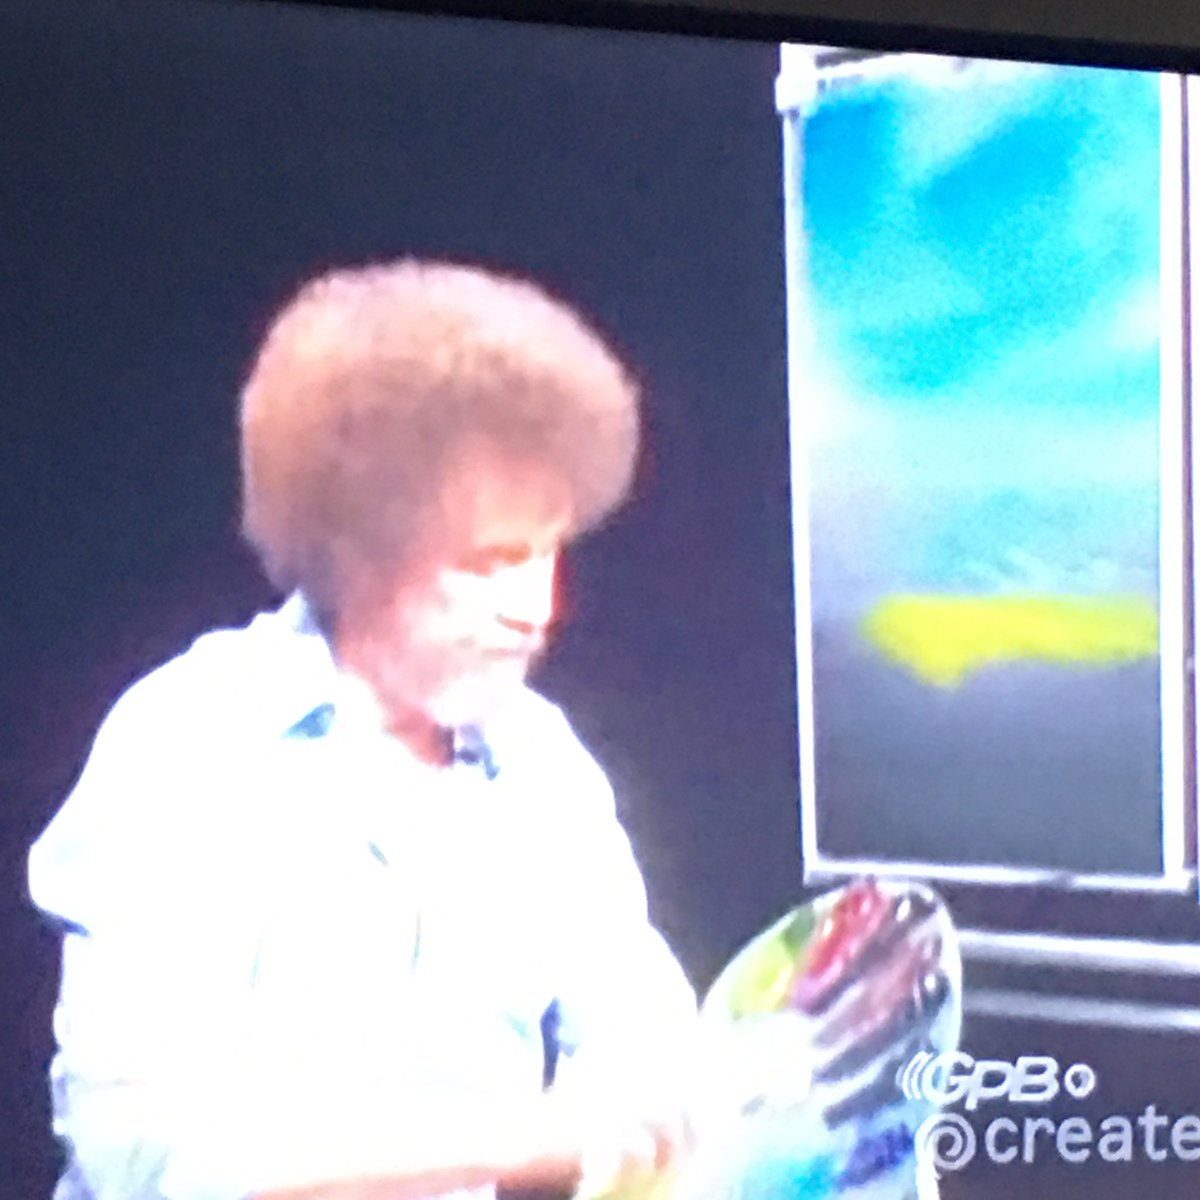 We need a little more Bob Ross in the world.